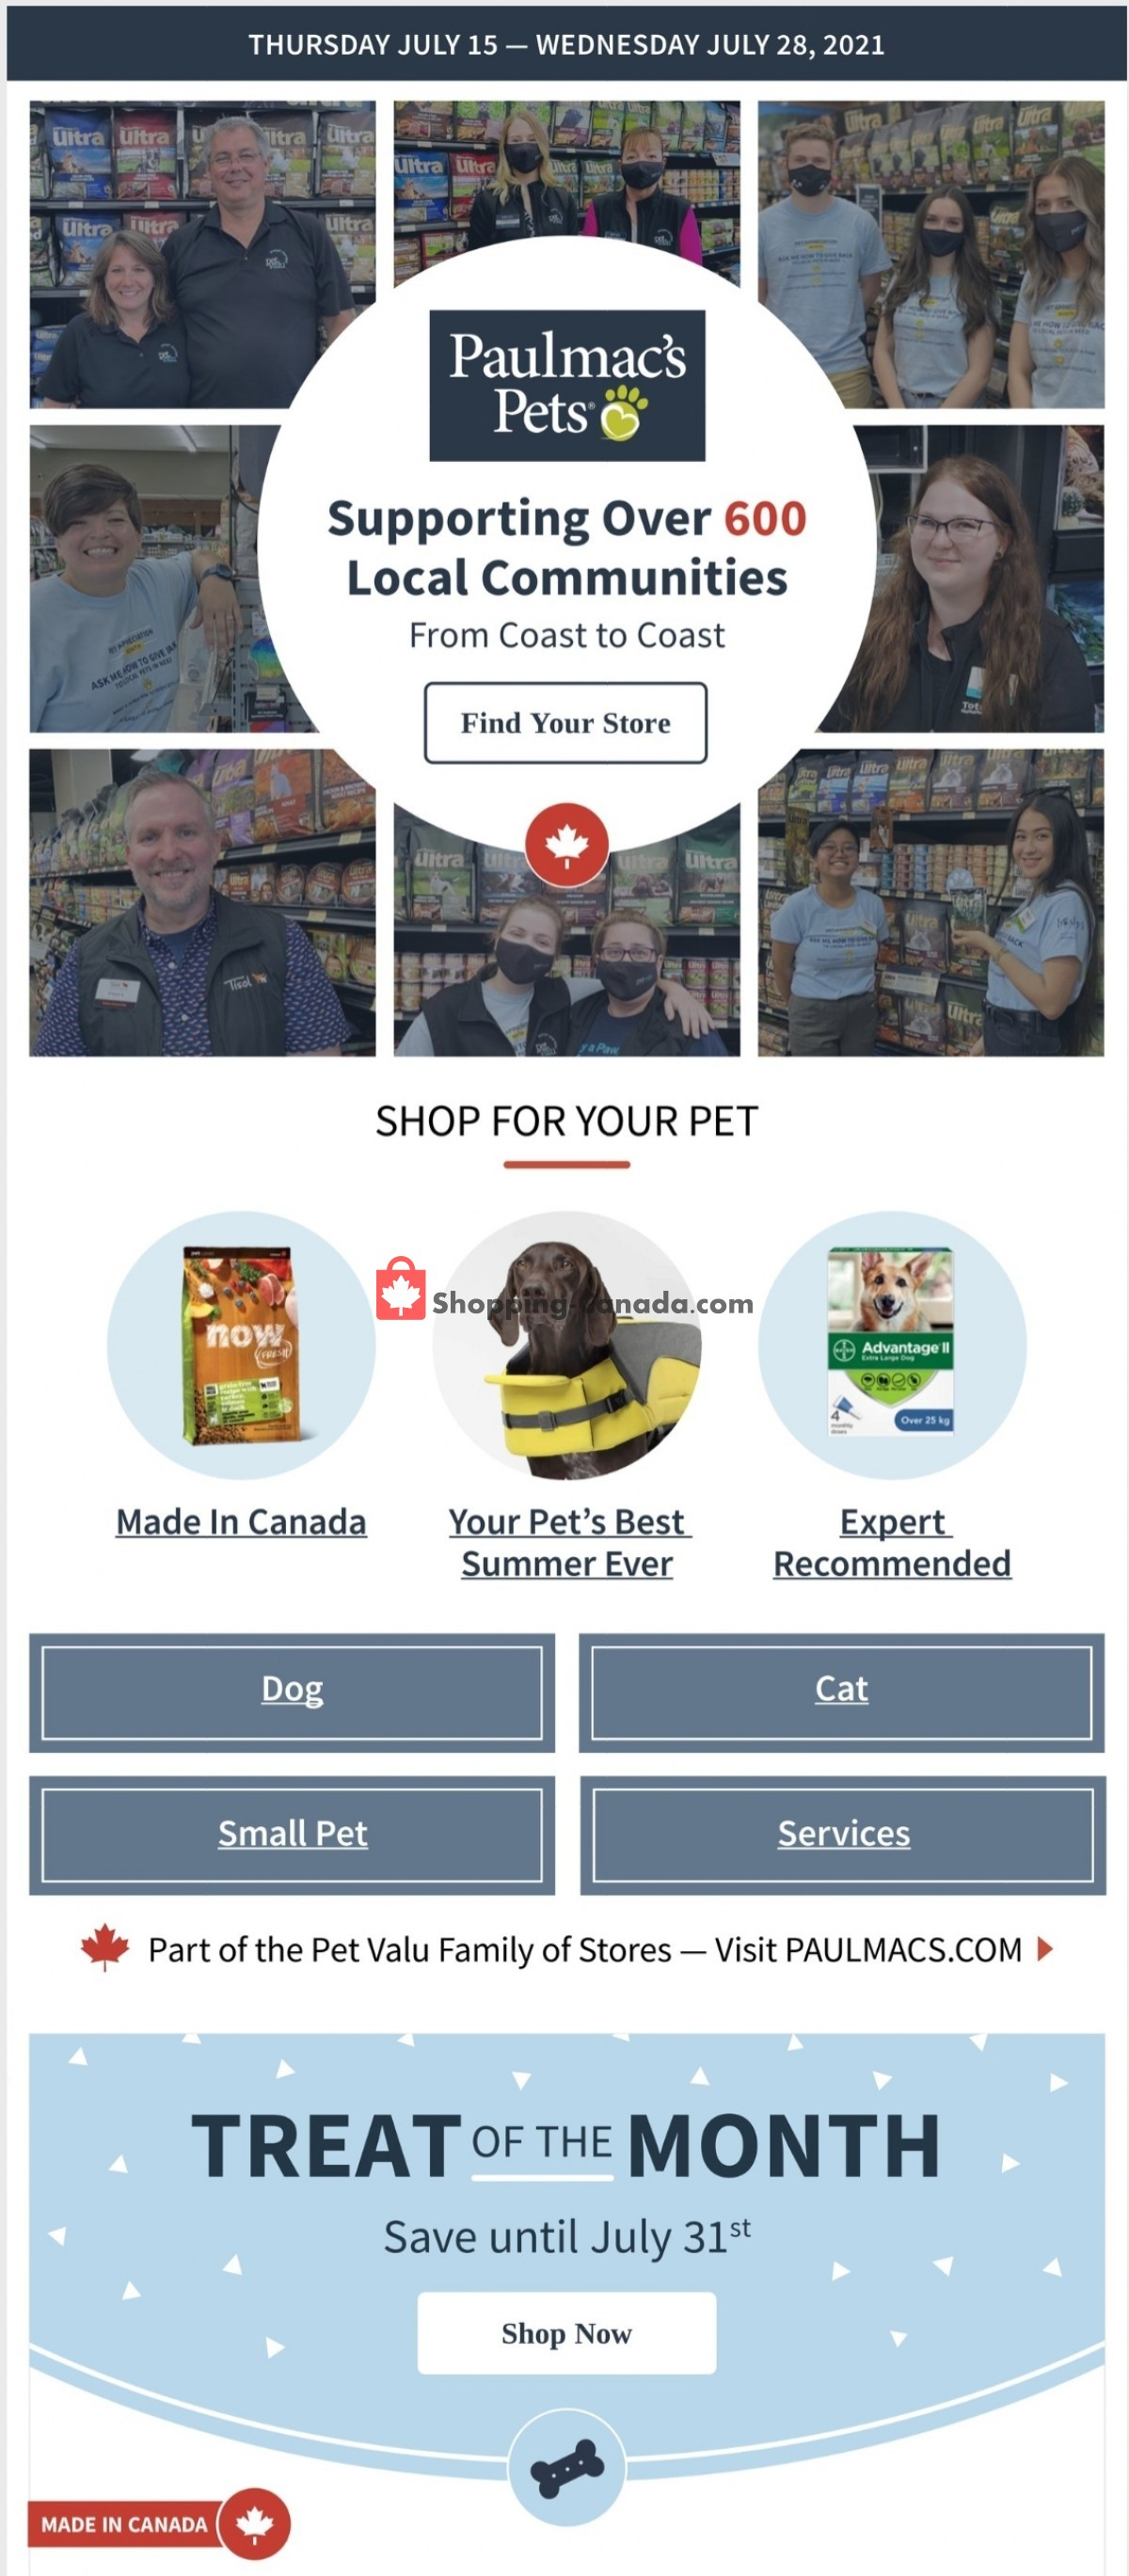 Flyer Paulmac's Pets Canada - from Thursday July 15, 2021 to Wednesday July 28, 2021